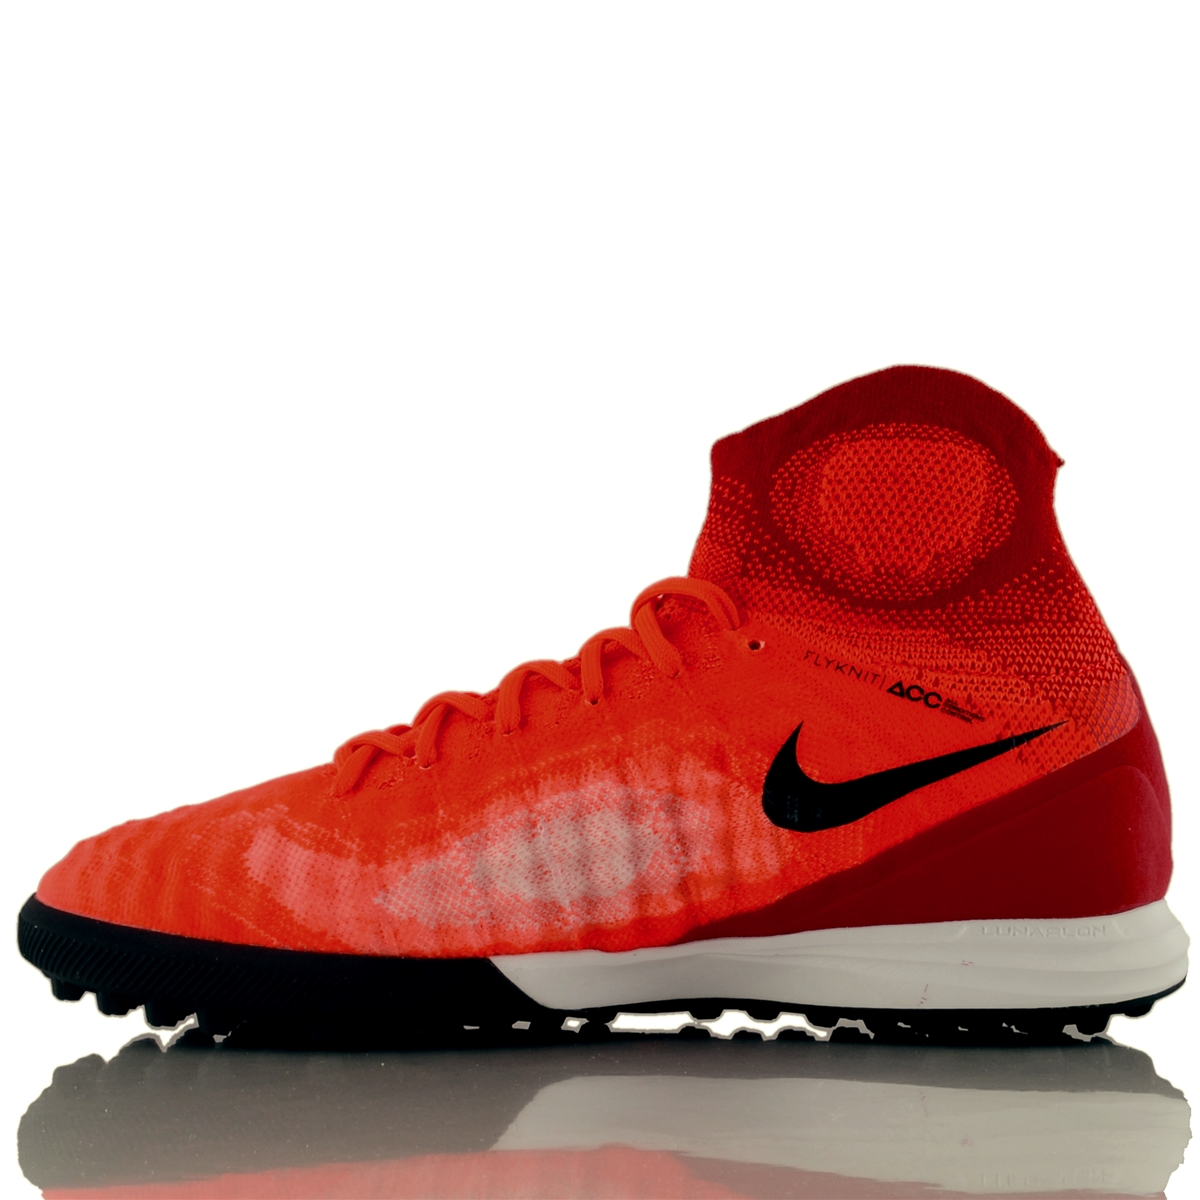 2d4a89d09ada Nike MagistaX Proximo II DF TF Turf Soccer Shoes (Total Crimson ...